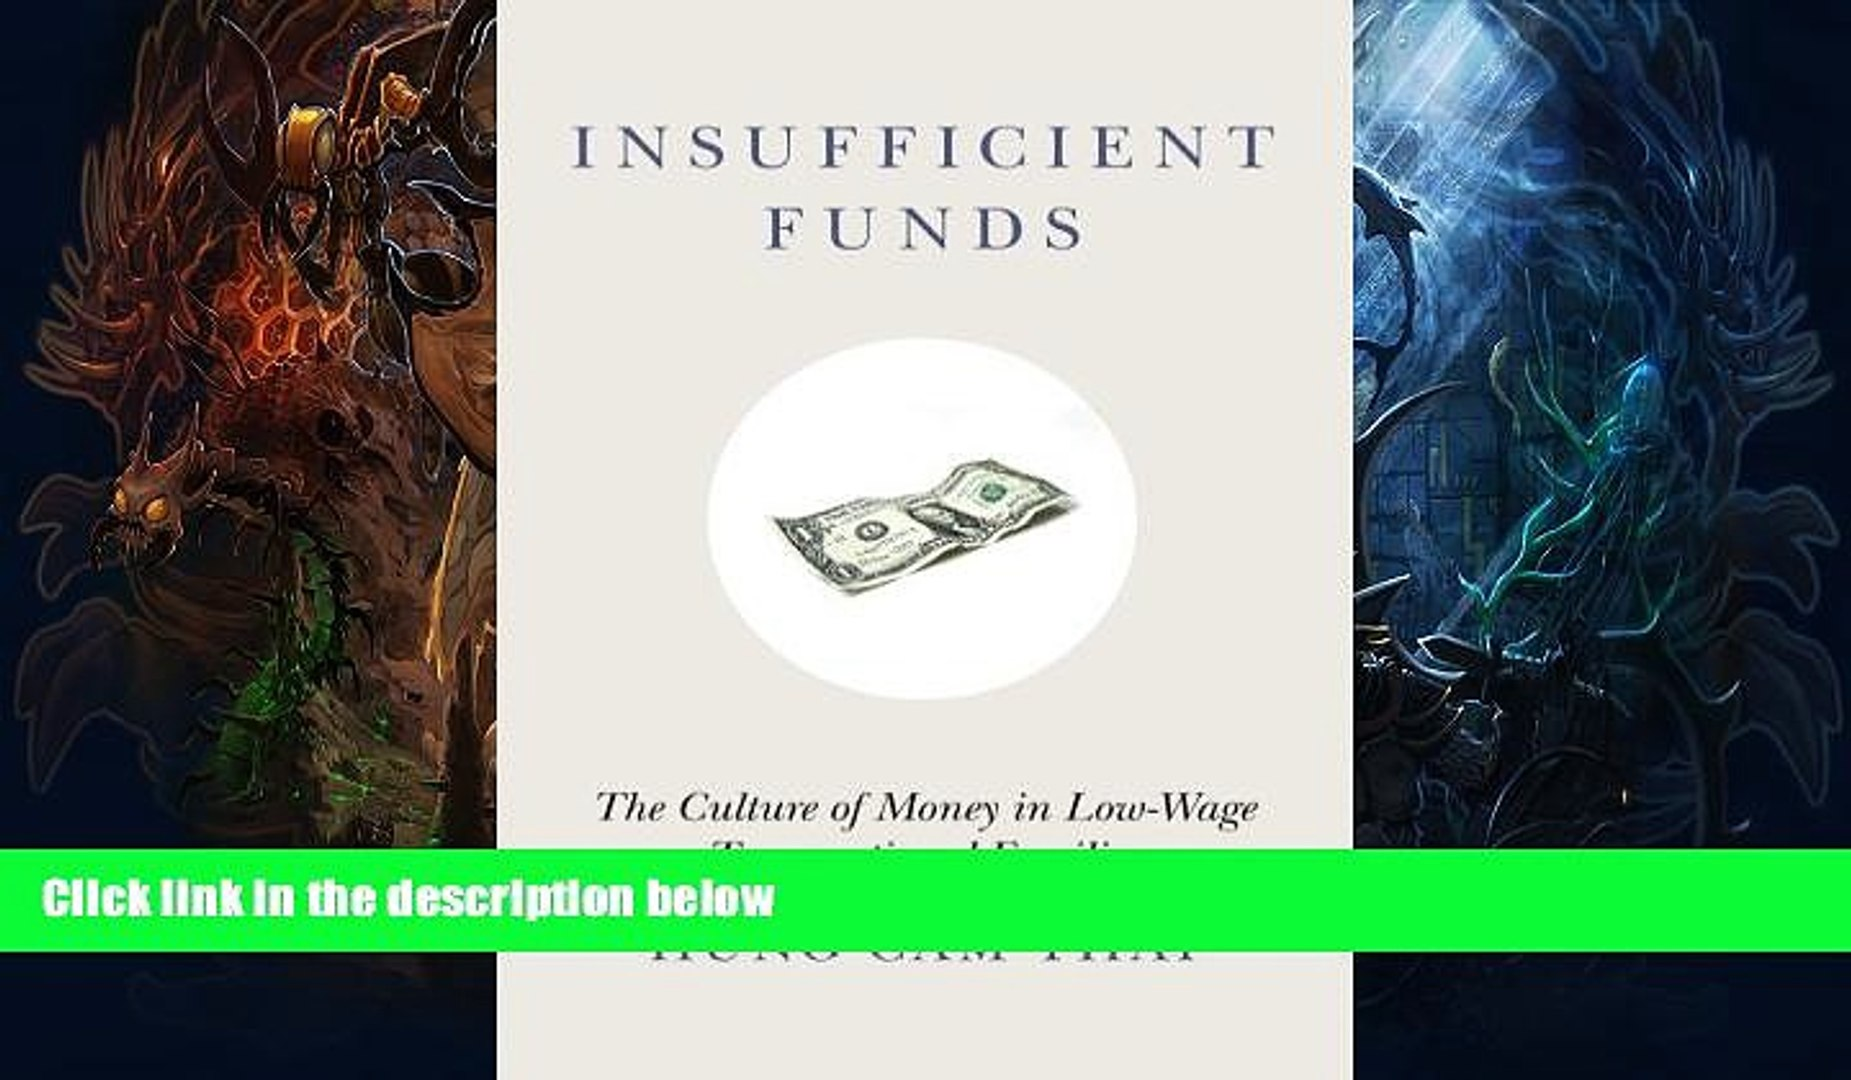 Read Online Insufficient Funds: The Culture of Money in Low-Wage Transnational Families Hung Cam